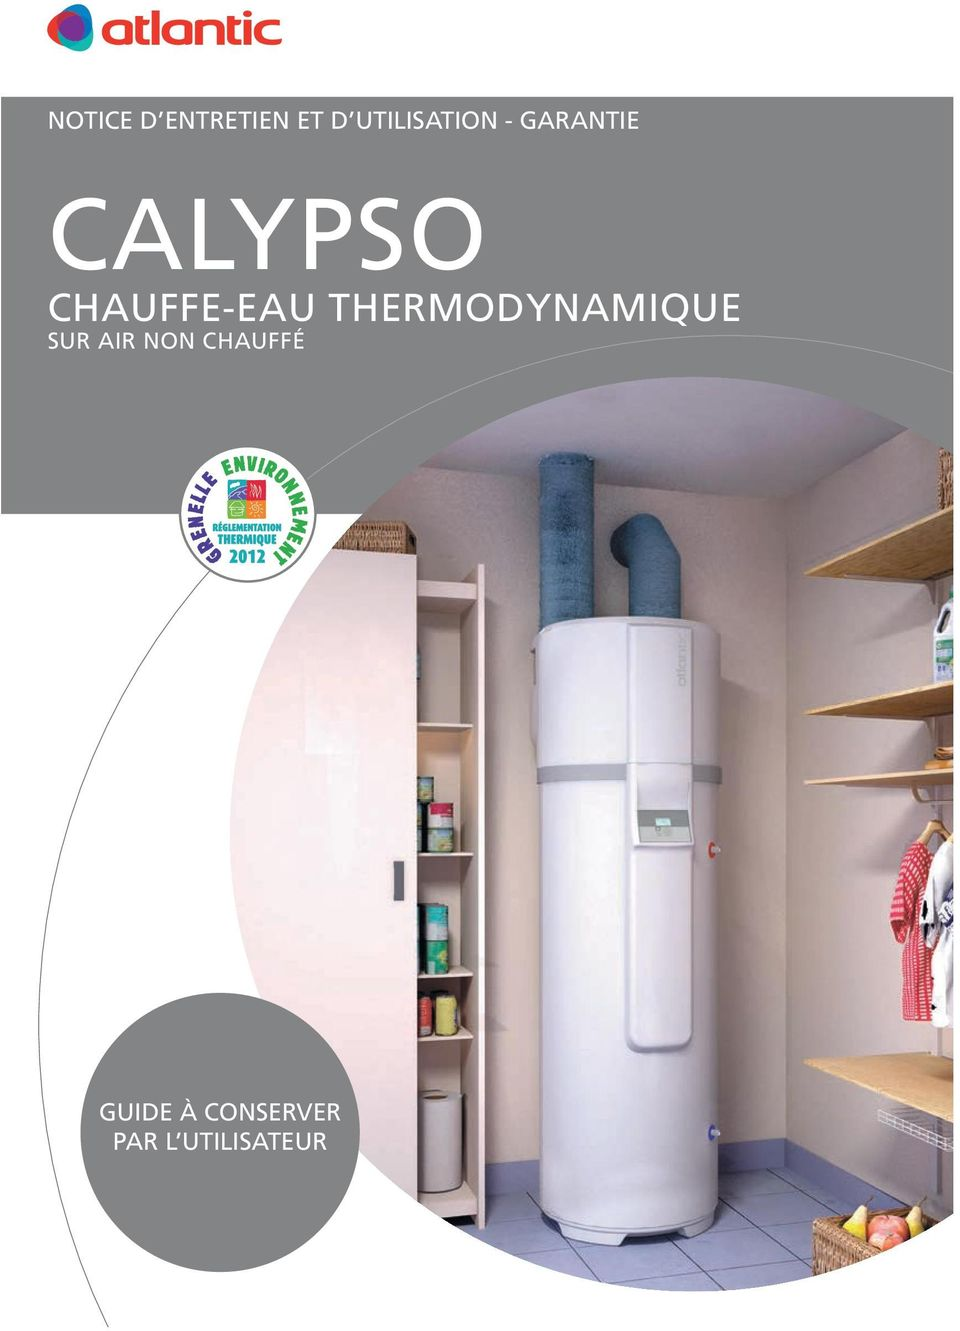 notice d entretien et d utilisation garantie calypso chauffe eau thermodynamique sur air non. Black Bedroom Furniture Sets. Home Design Ideas